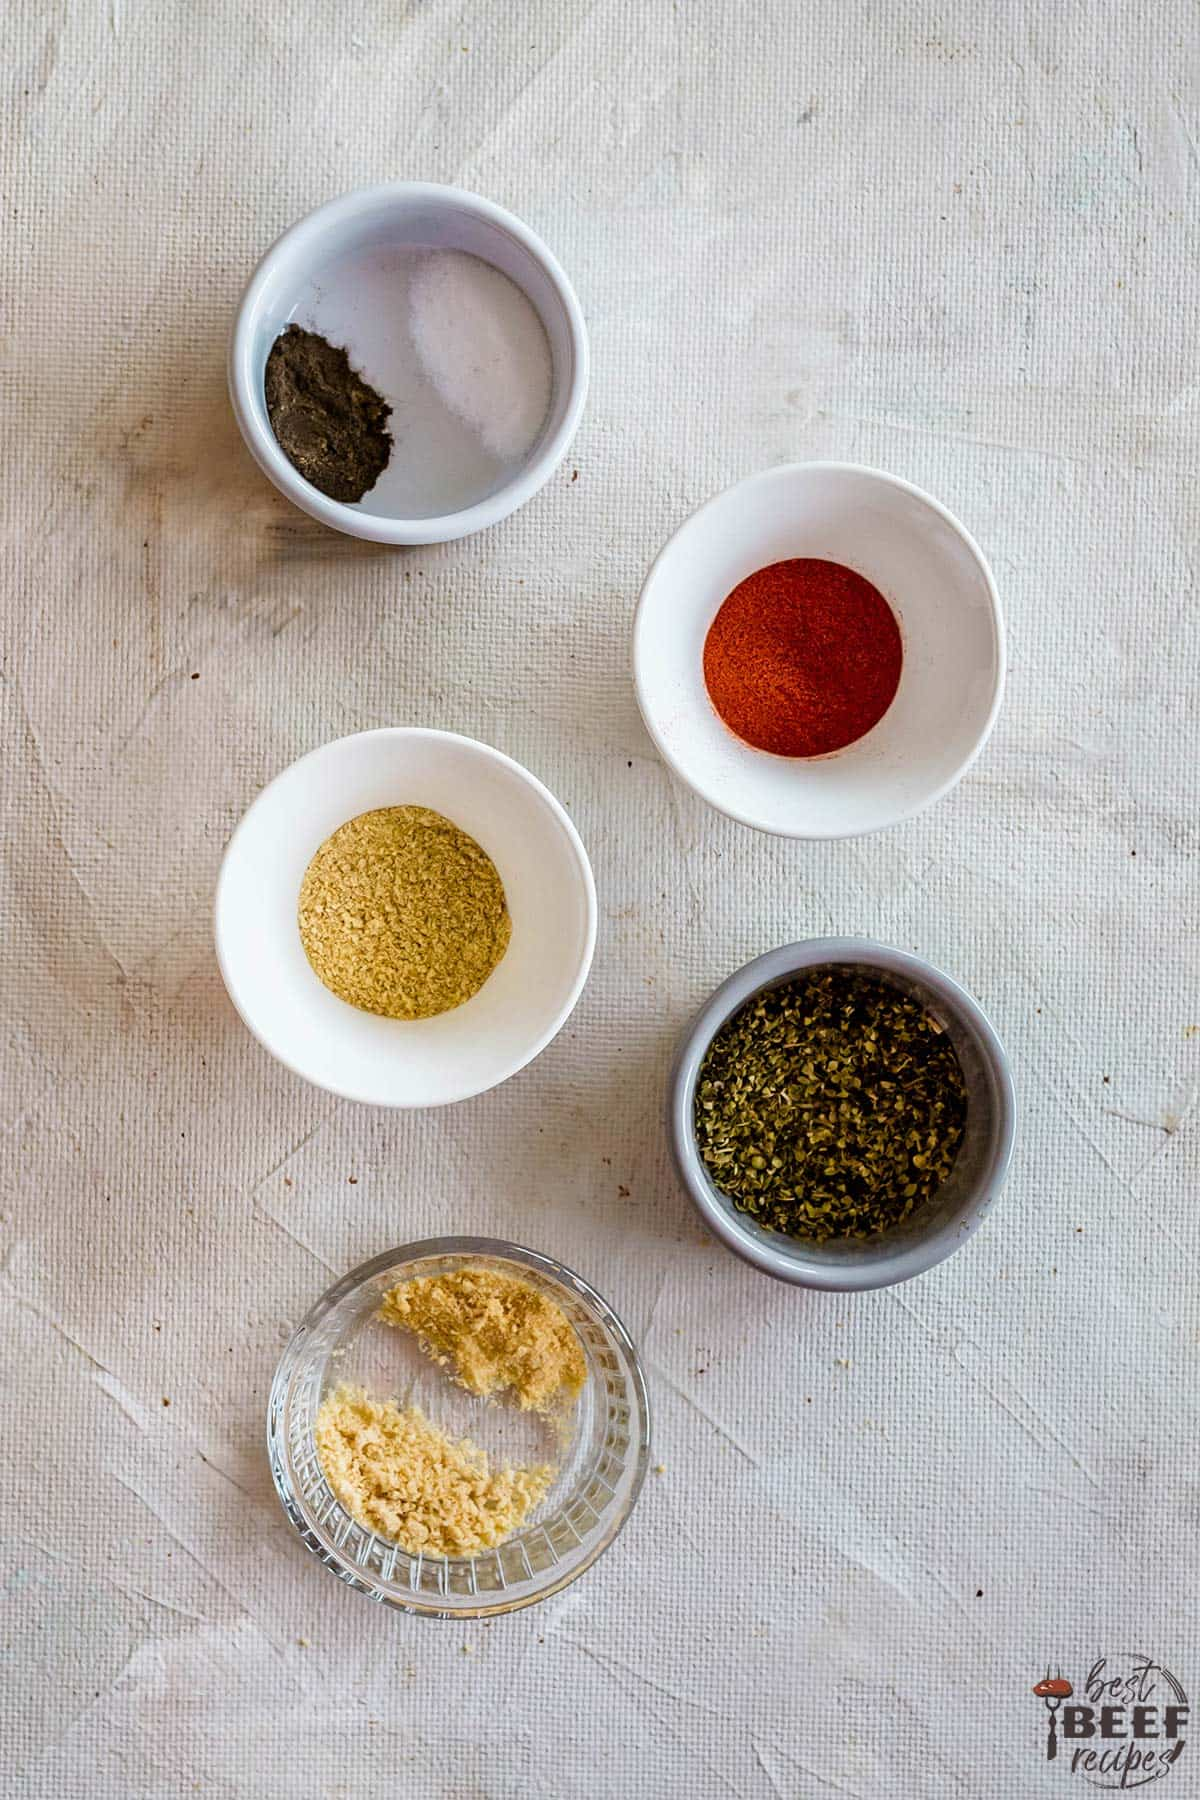 Salt and pepper, paprika, dried mustard, dried basil, garlic and onion powder in bowls